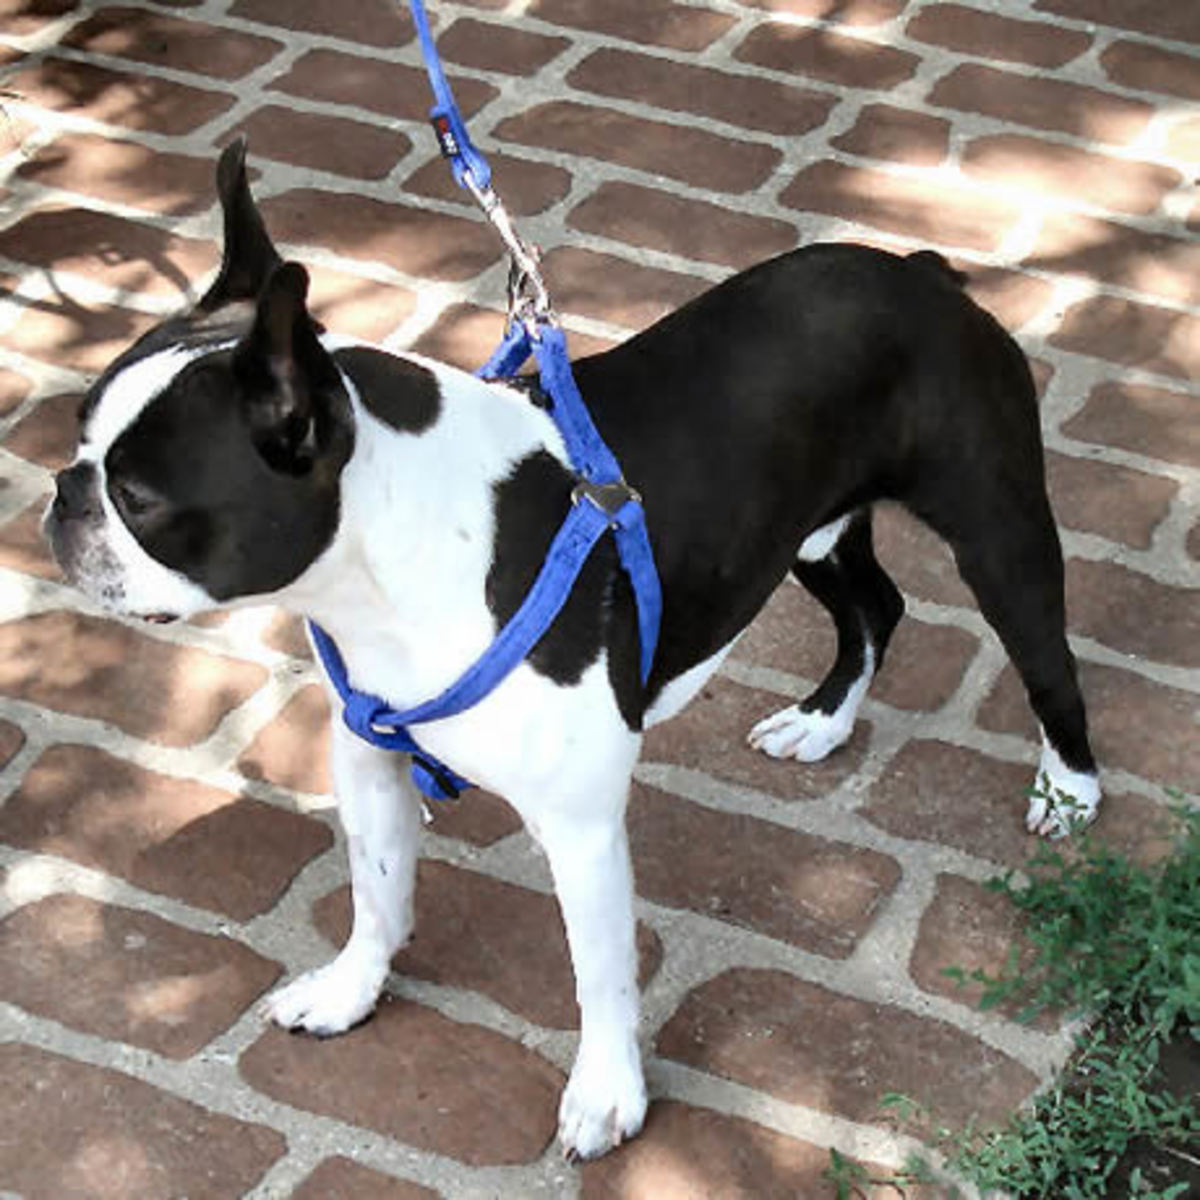 Booker (Boston Terrier) in the Microfiber Step-in Harness